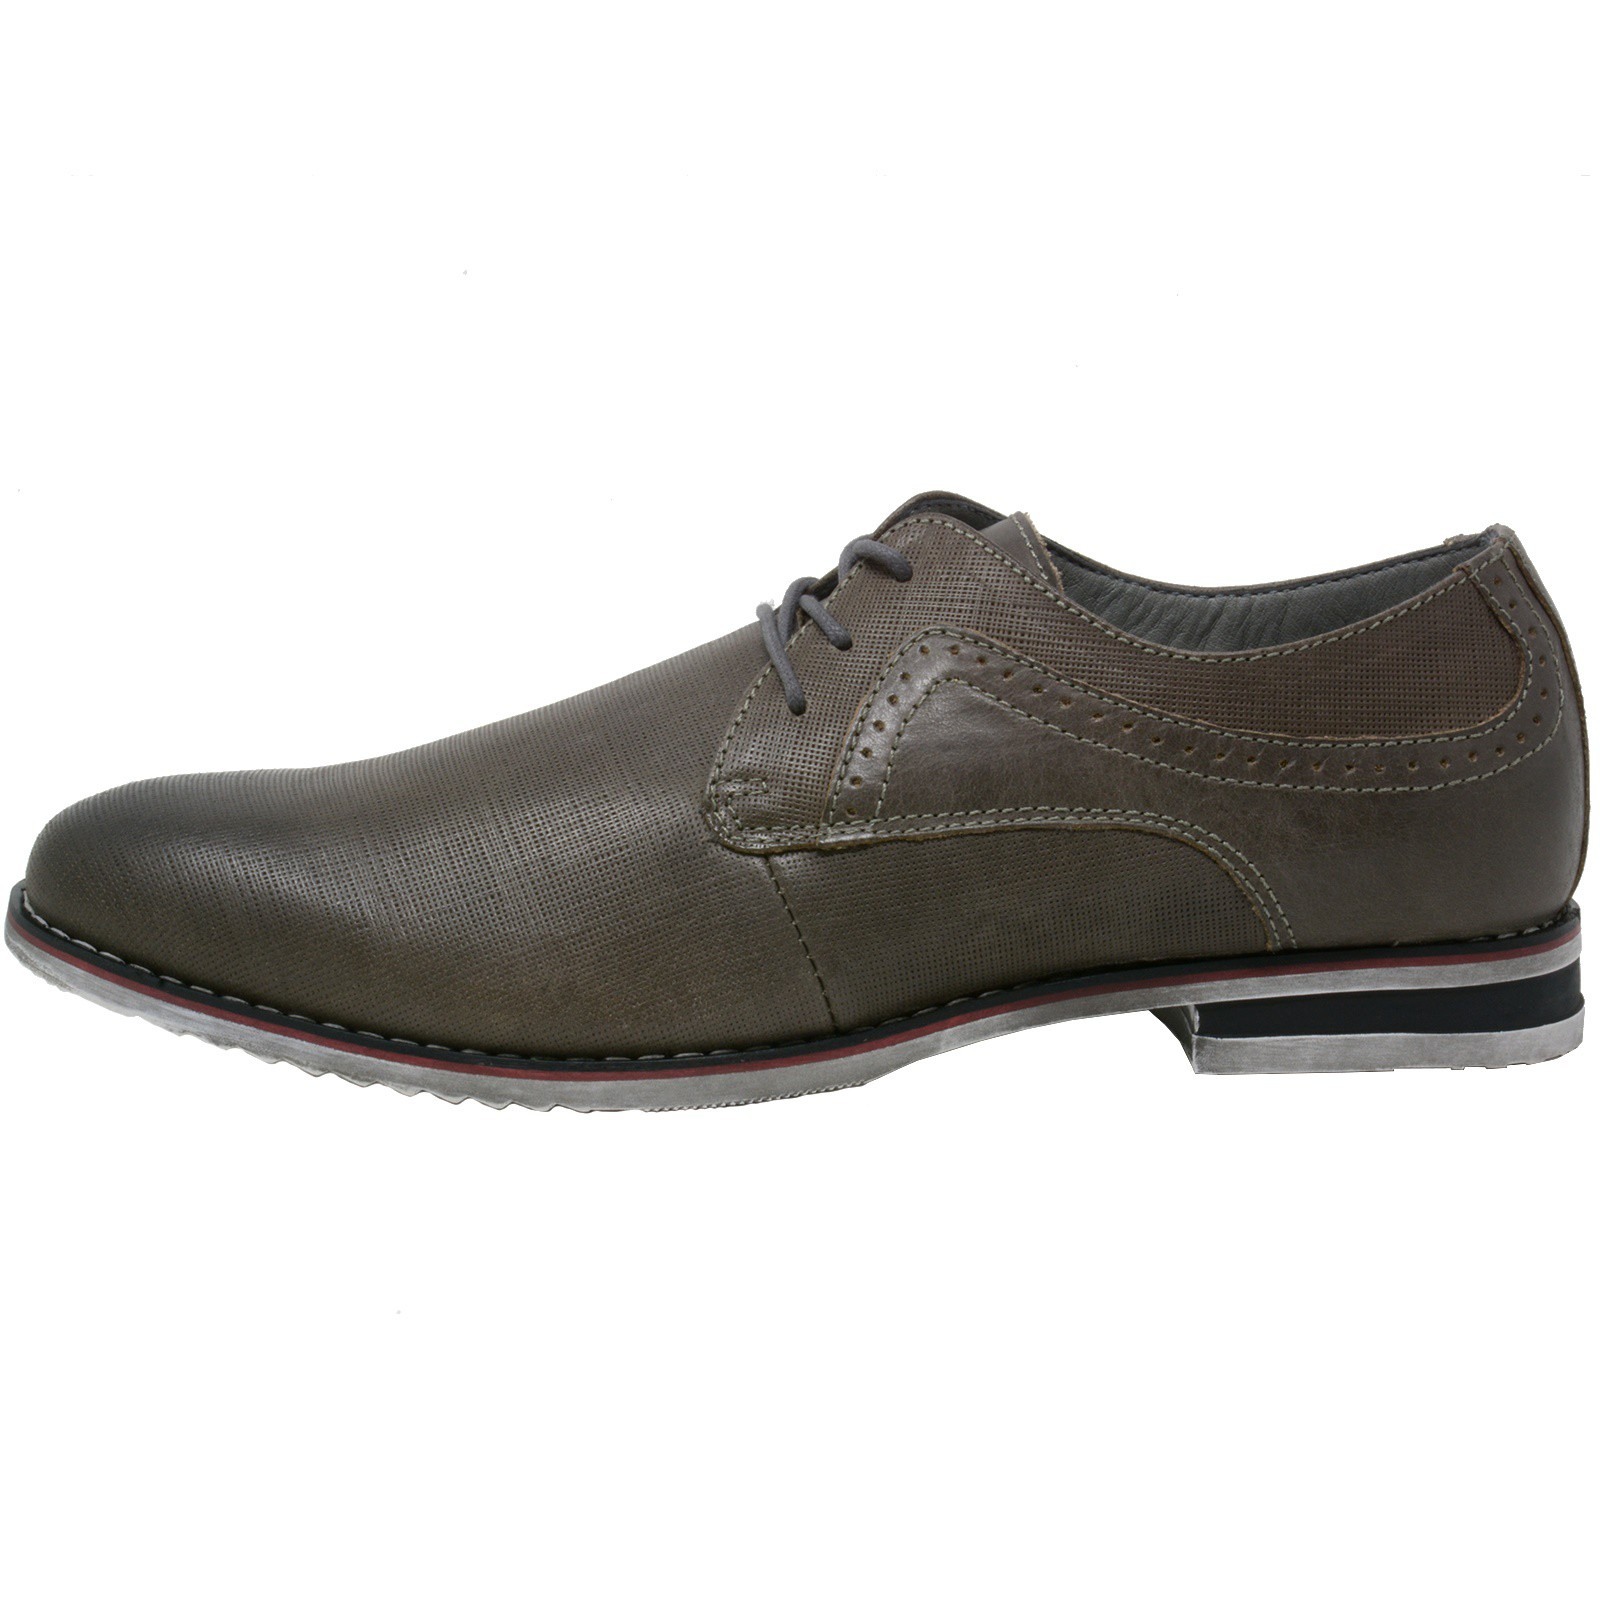 Double-Diamond-by-Alpine-Swiss-Mens-Saffiano-Leather-Lace-Up-Oxford-Dress-Shoes thumbnail 26